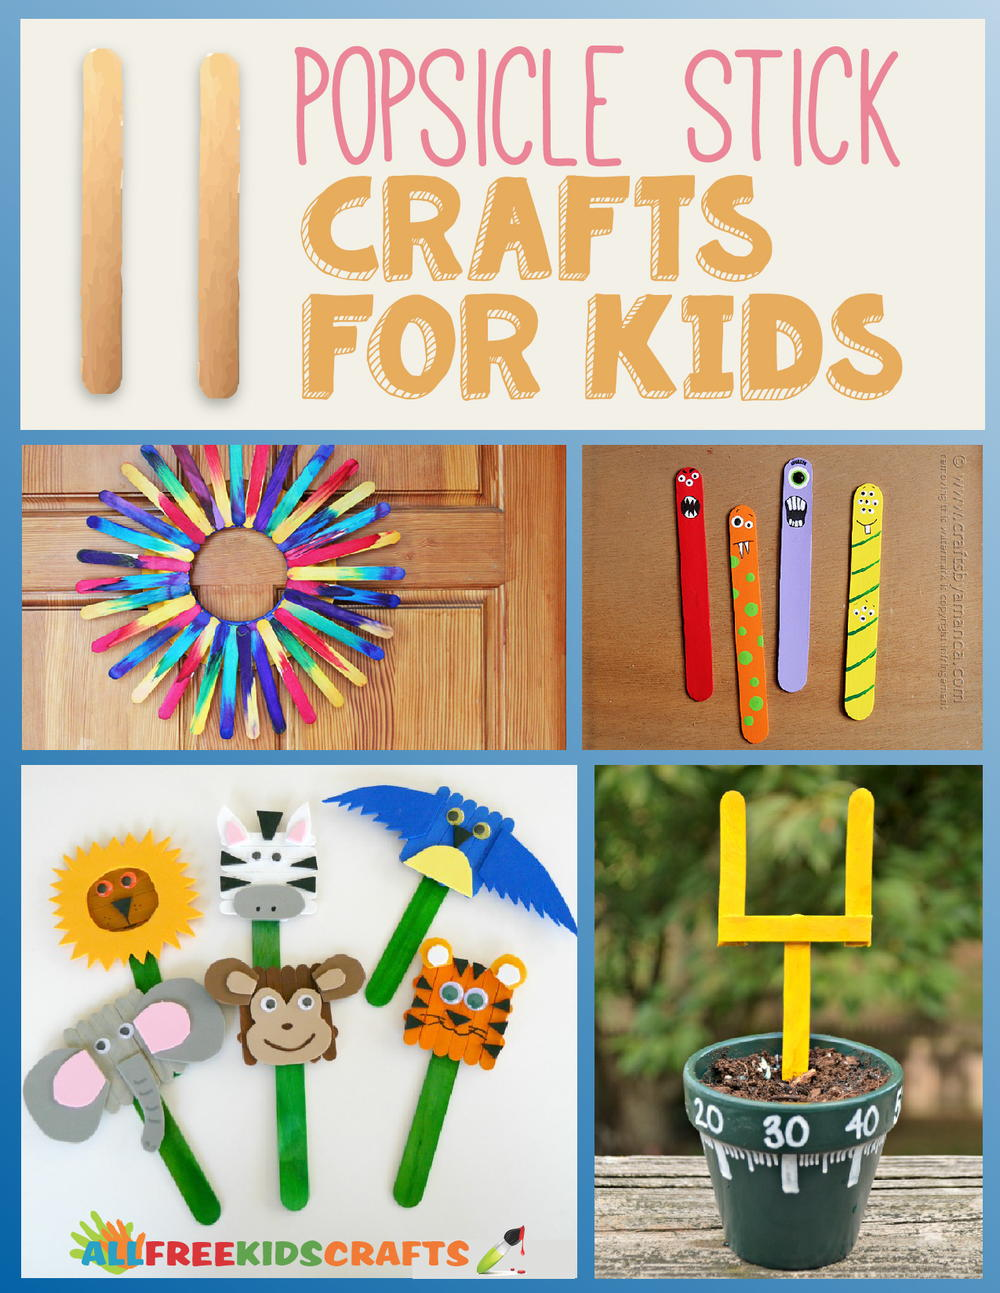 11 Popsicle Stick Crafts For Kids Allfreekidscrafts Com